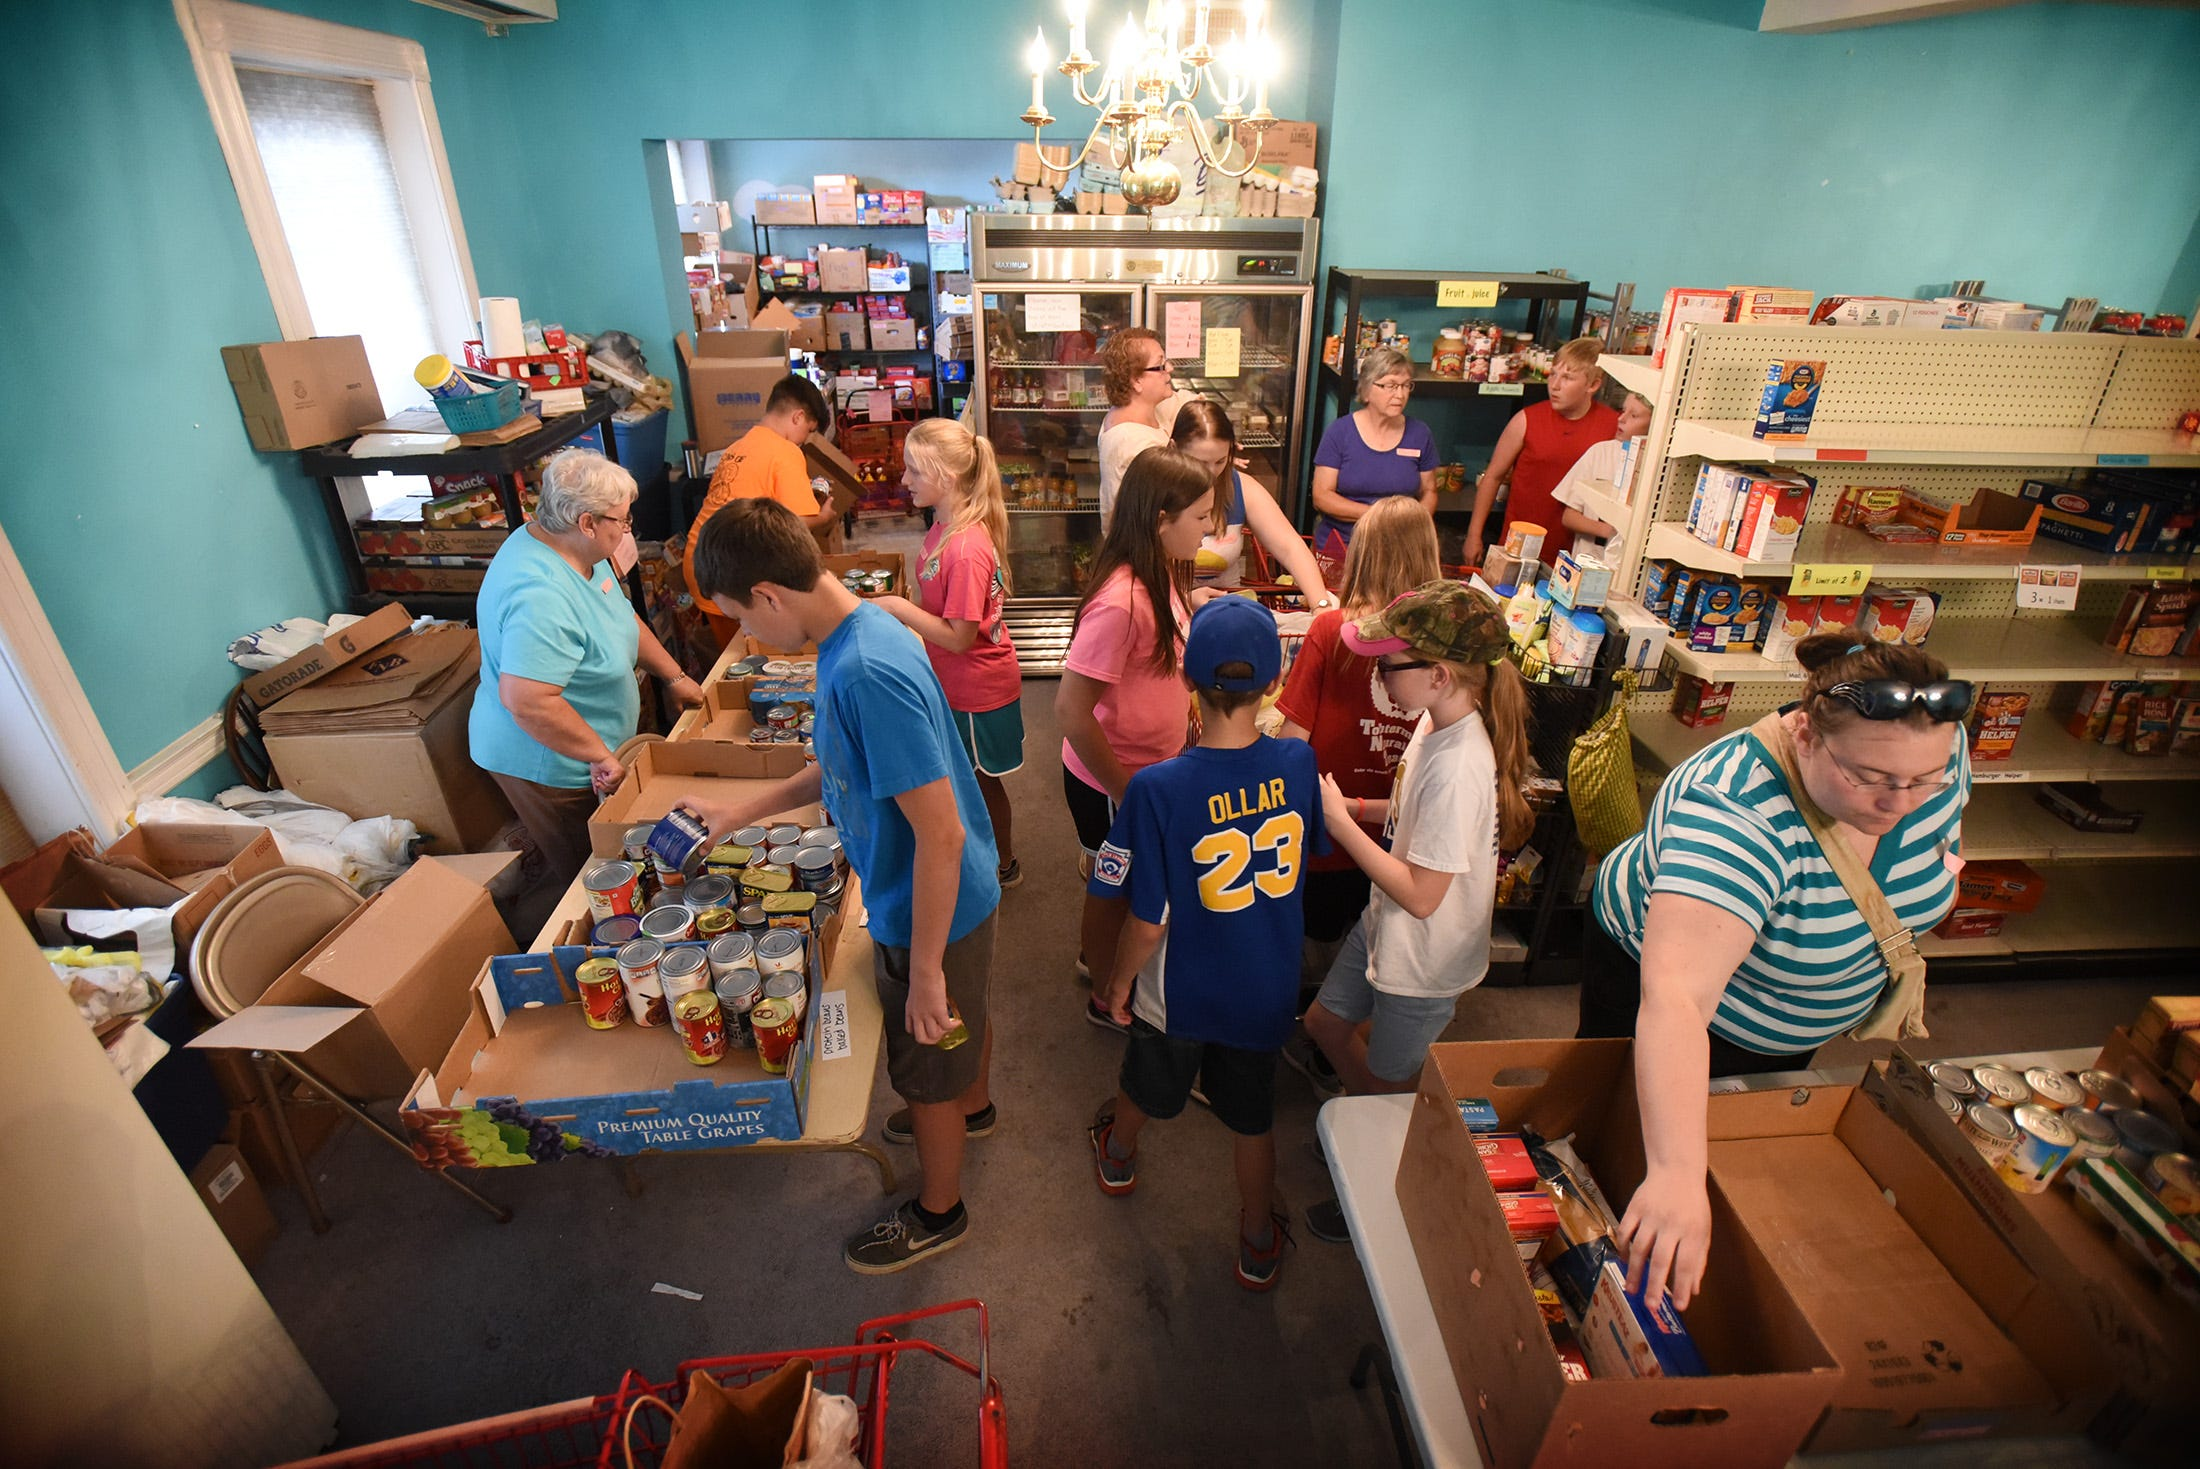 PHOTOS Ono group lends a helping hand at food pantry